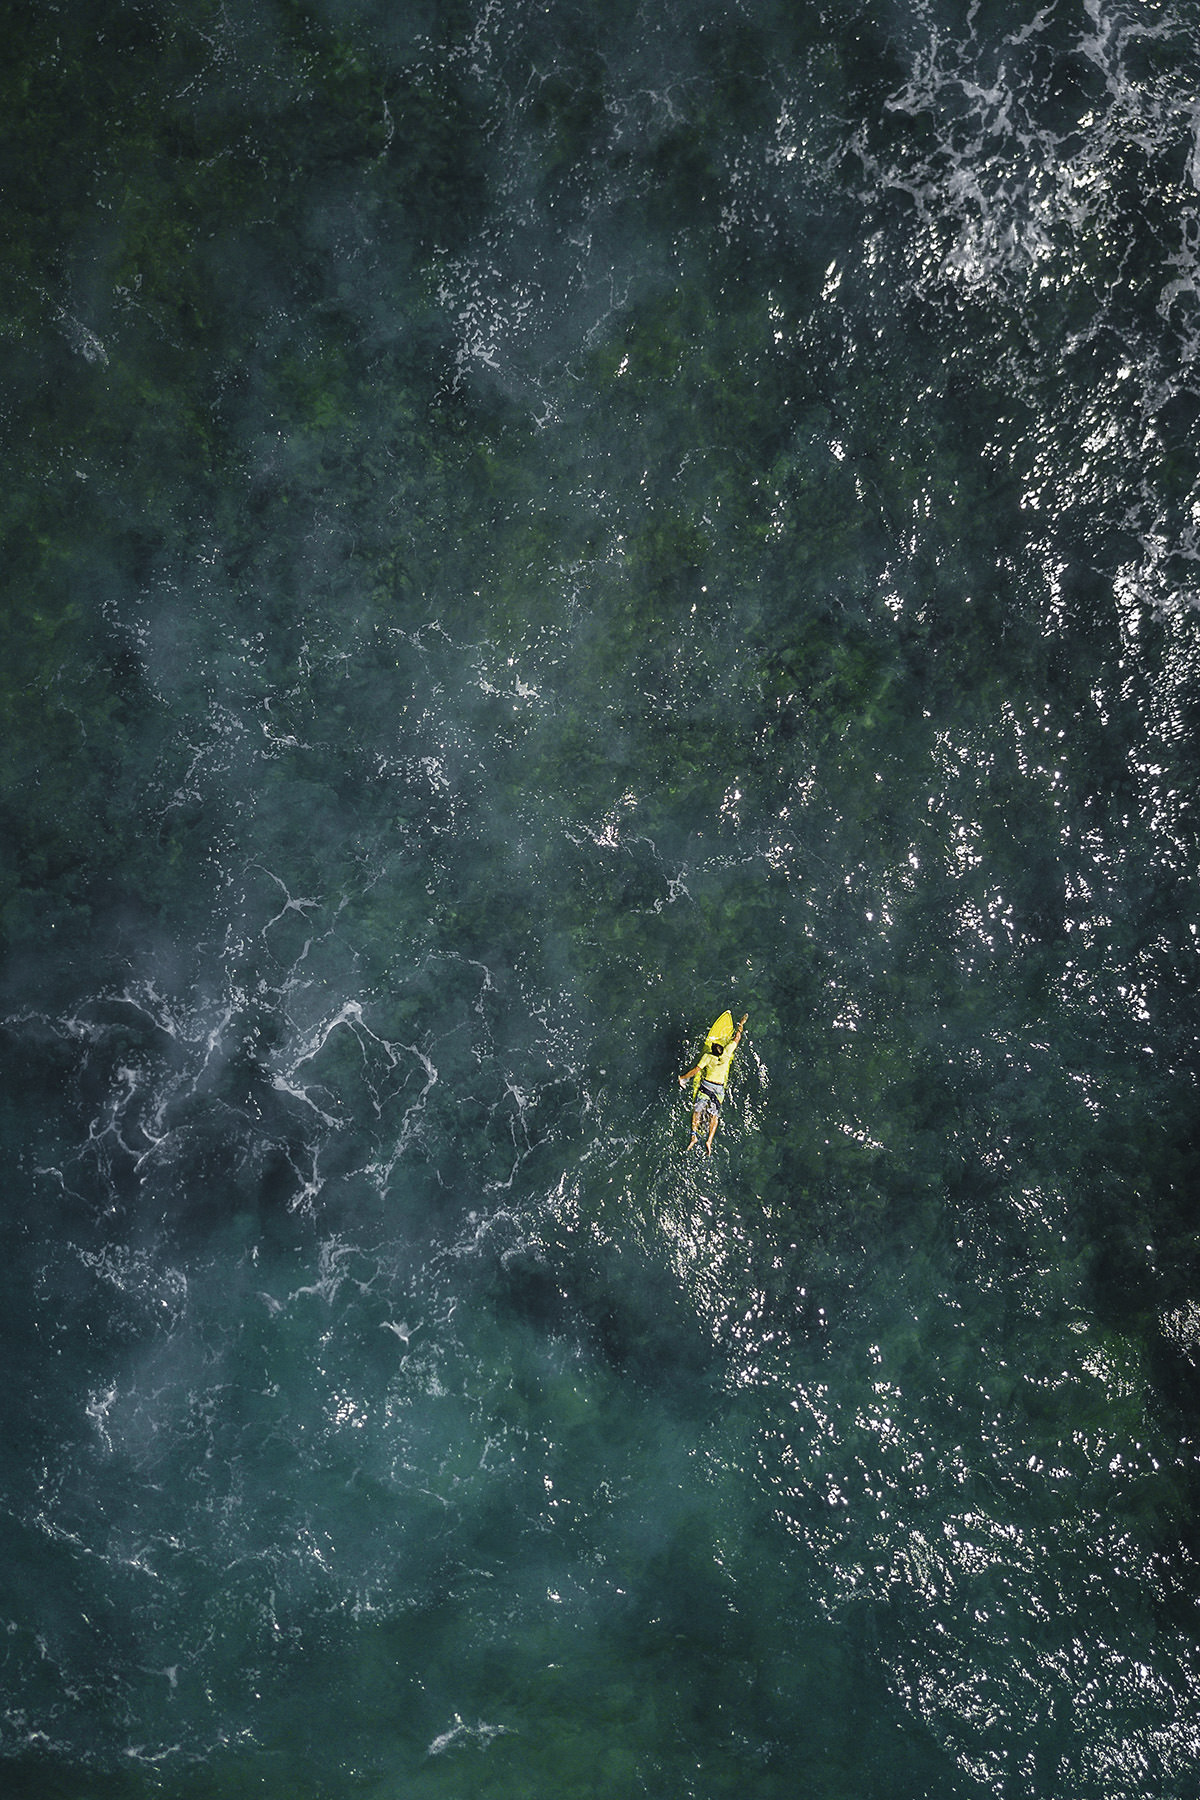 bali-surfing-uluwatu-travel-surfer-drone.jpg